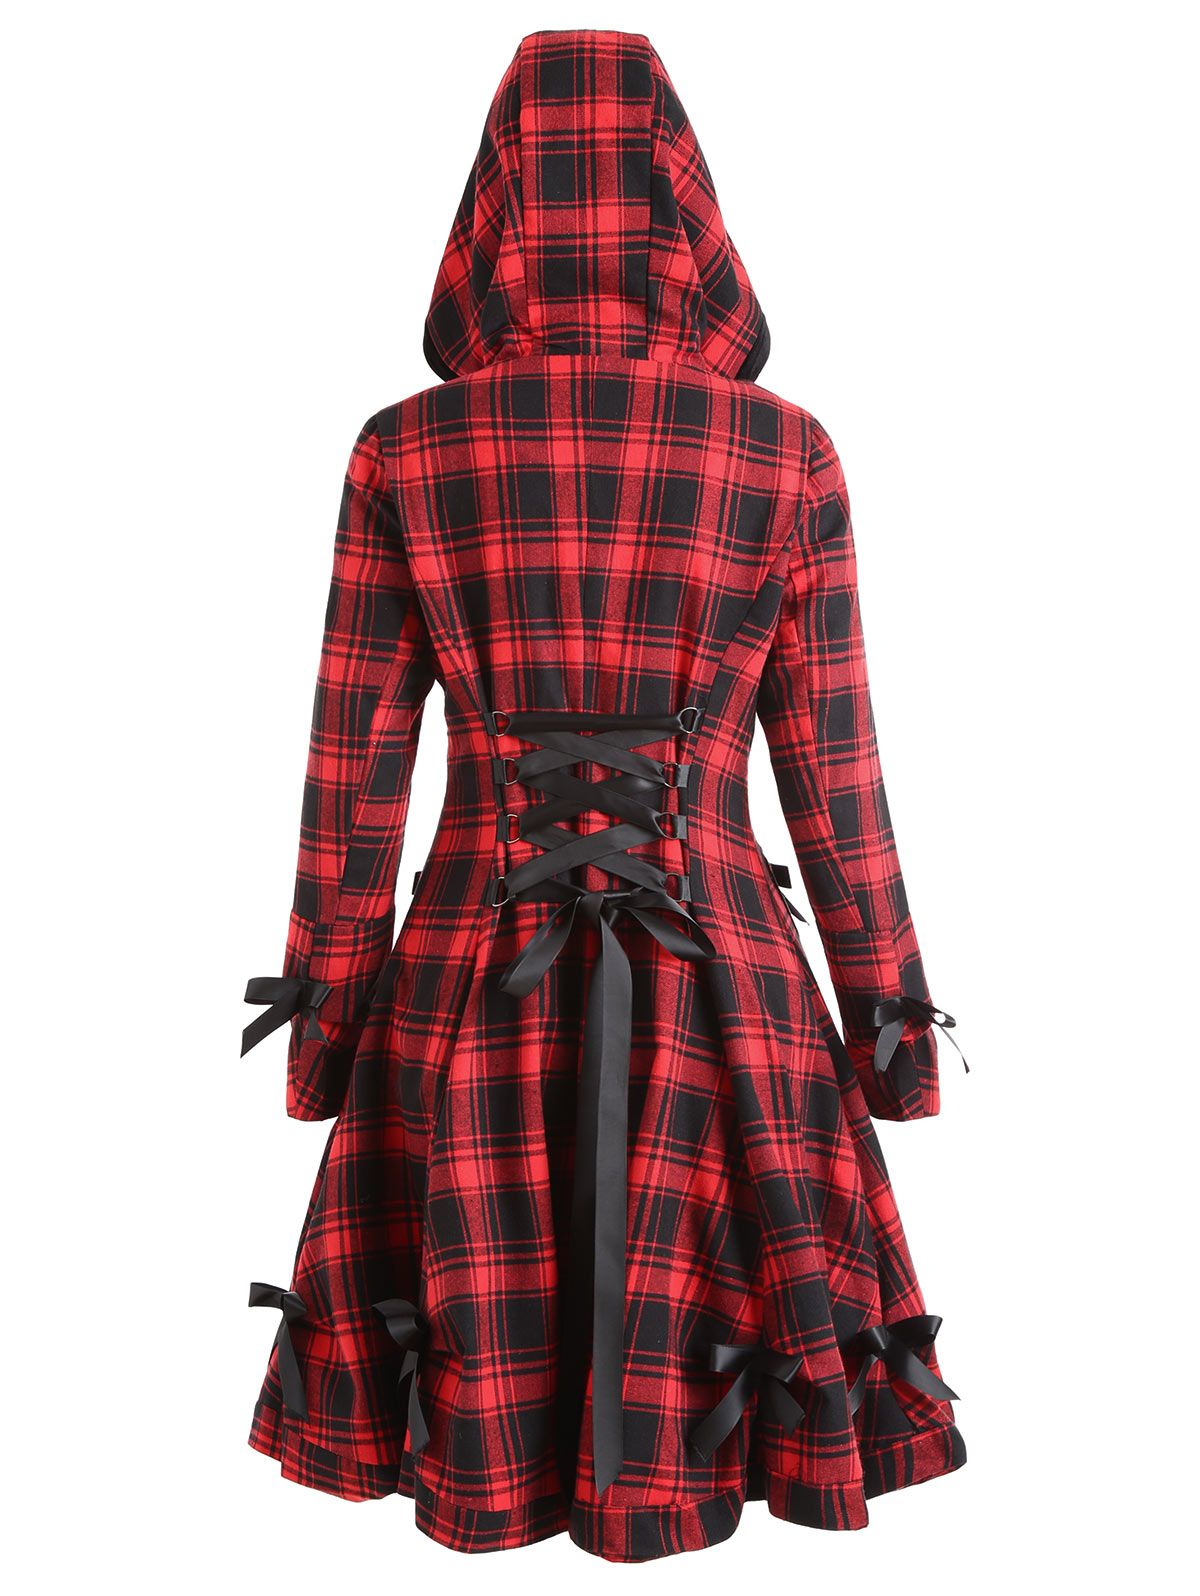 LANGSTAR 2017 Autumn Coat Women Plaid Hooded Button Up Skirted Coat Gothic Bow Lace-Up Long Pocket Women Outerwear <font><b>Trench</b></font> Coats